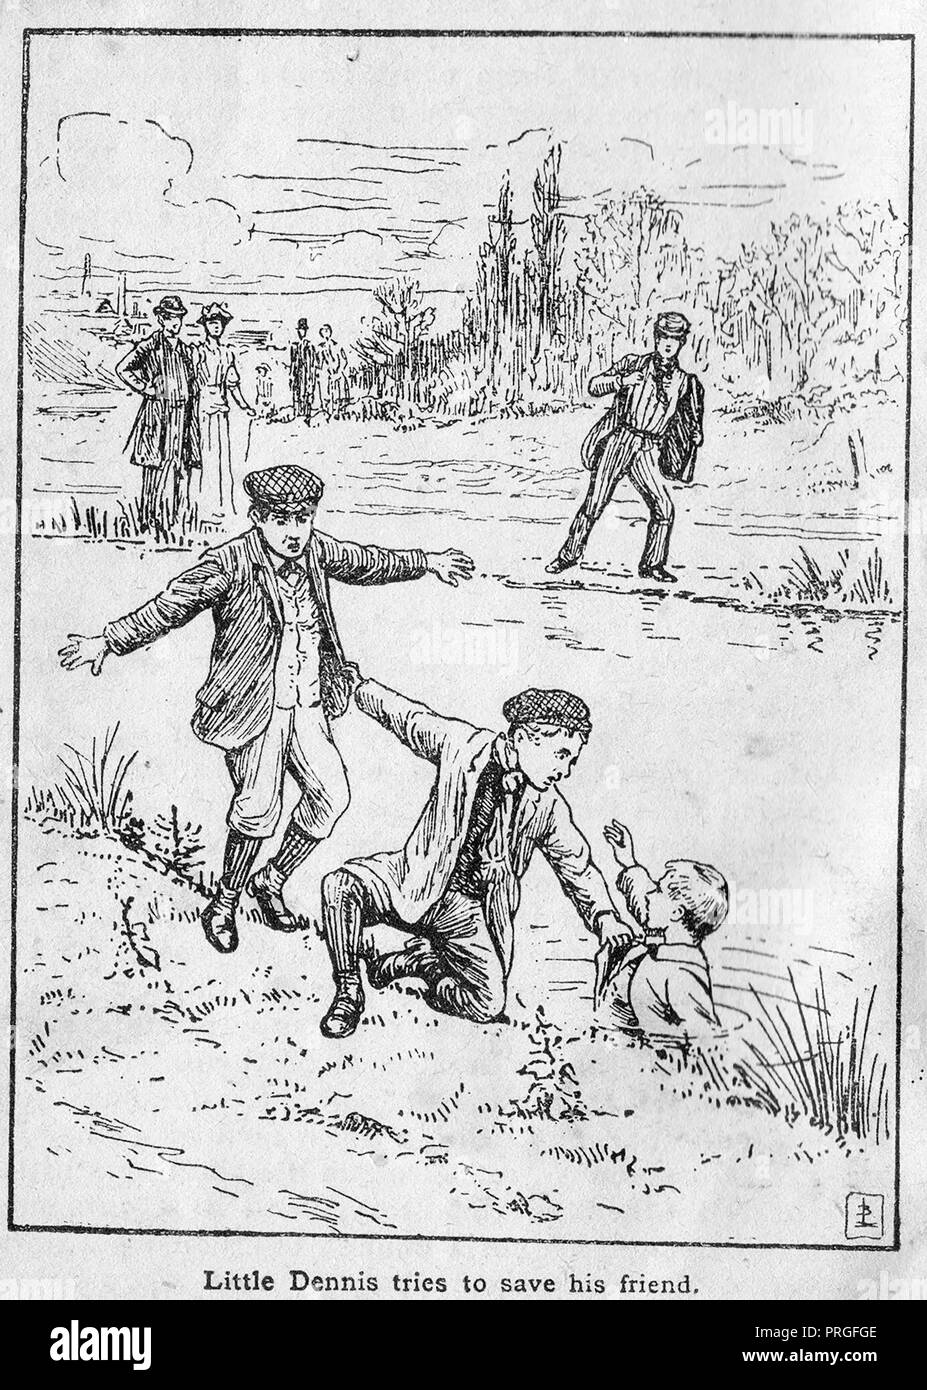 1902 illustration of the drowning of  Denis Petchell - Horse driver  John Atkins rescued Bert Osborne &  William Dadford from the river Nen (Nene), Northamptonshire, Petchell died- See ROYAL HUMANE SOCIETY BRONZE MEDALS CITATIONS 1902 - Case 31889 - Stock Image